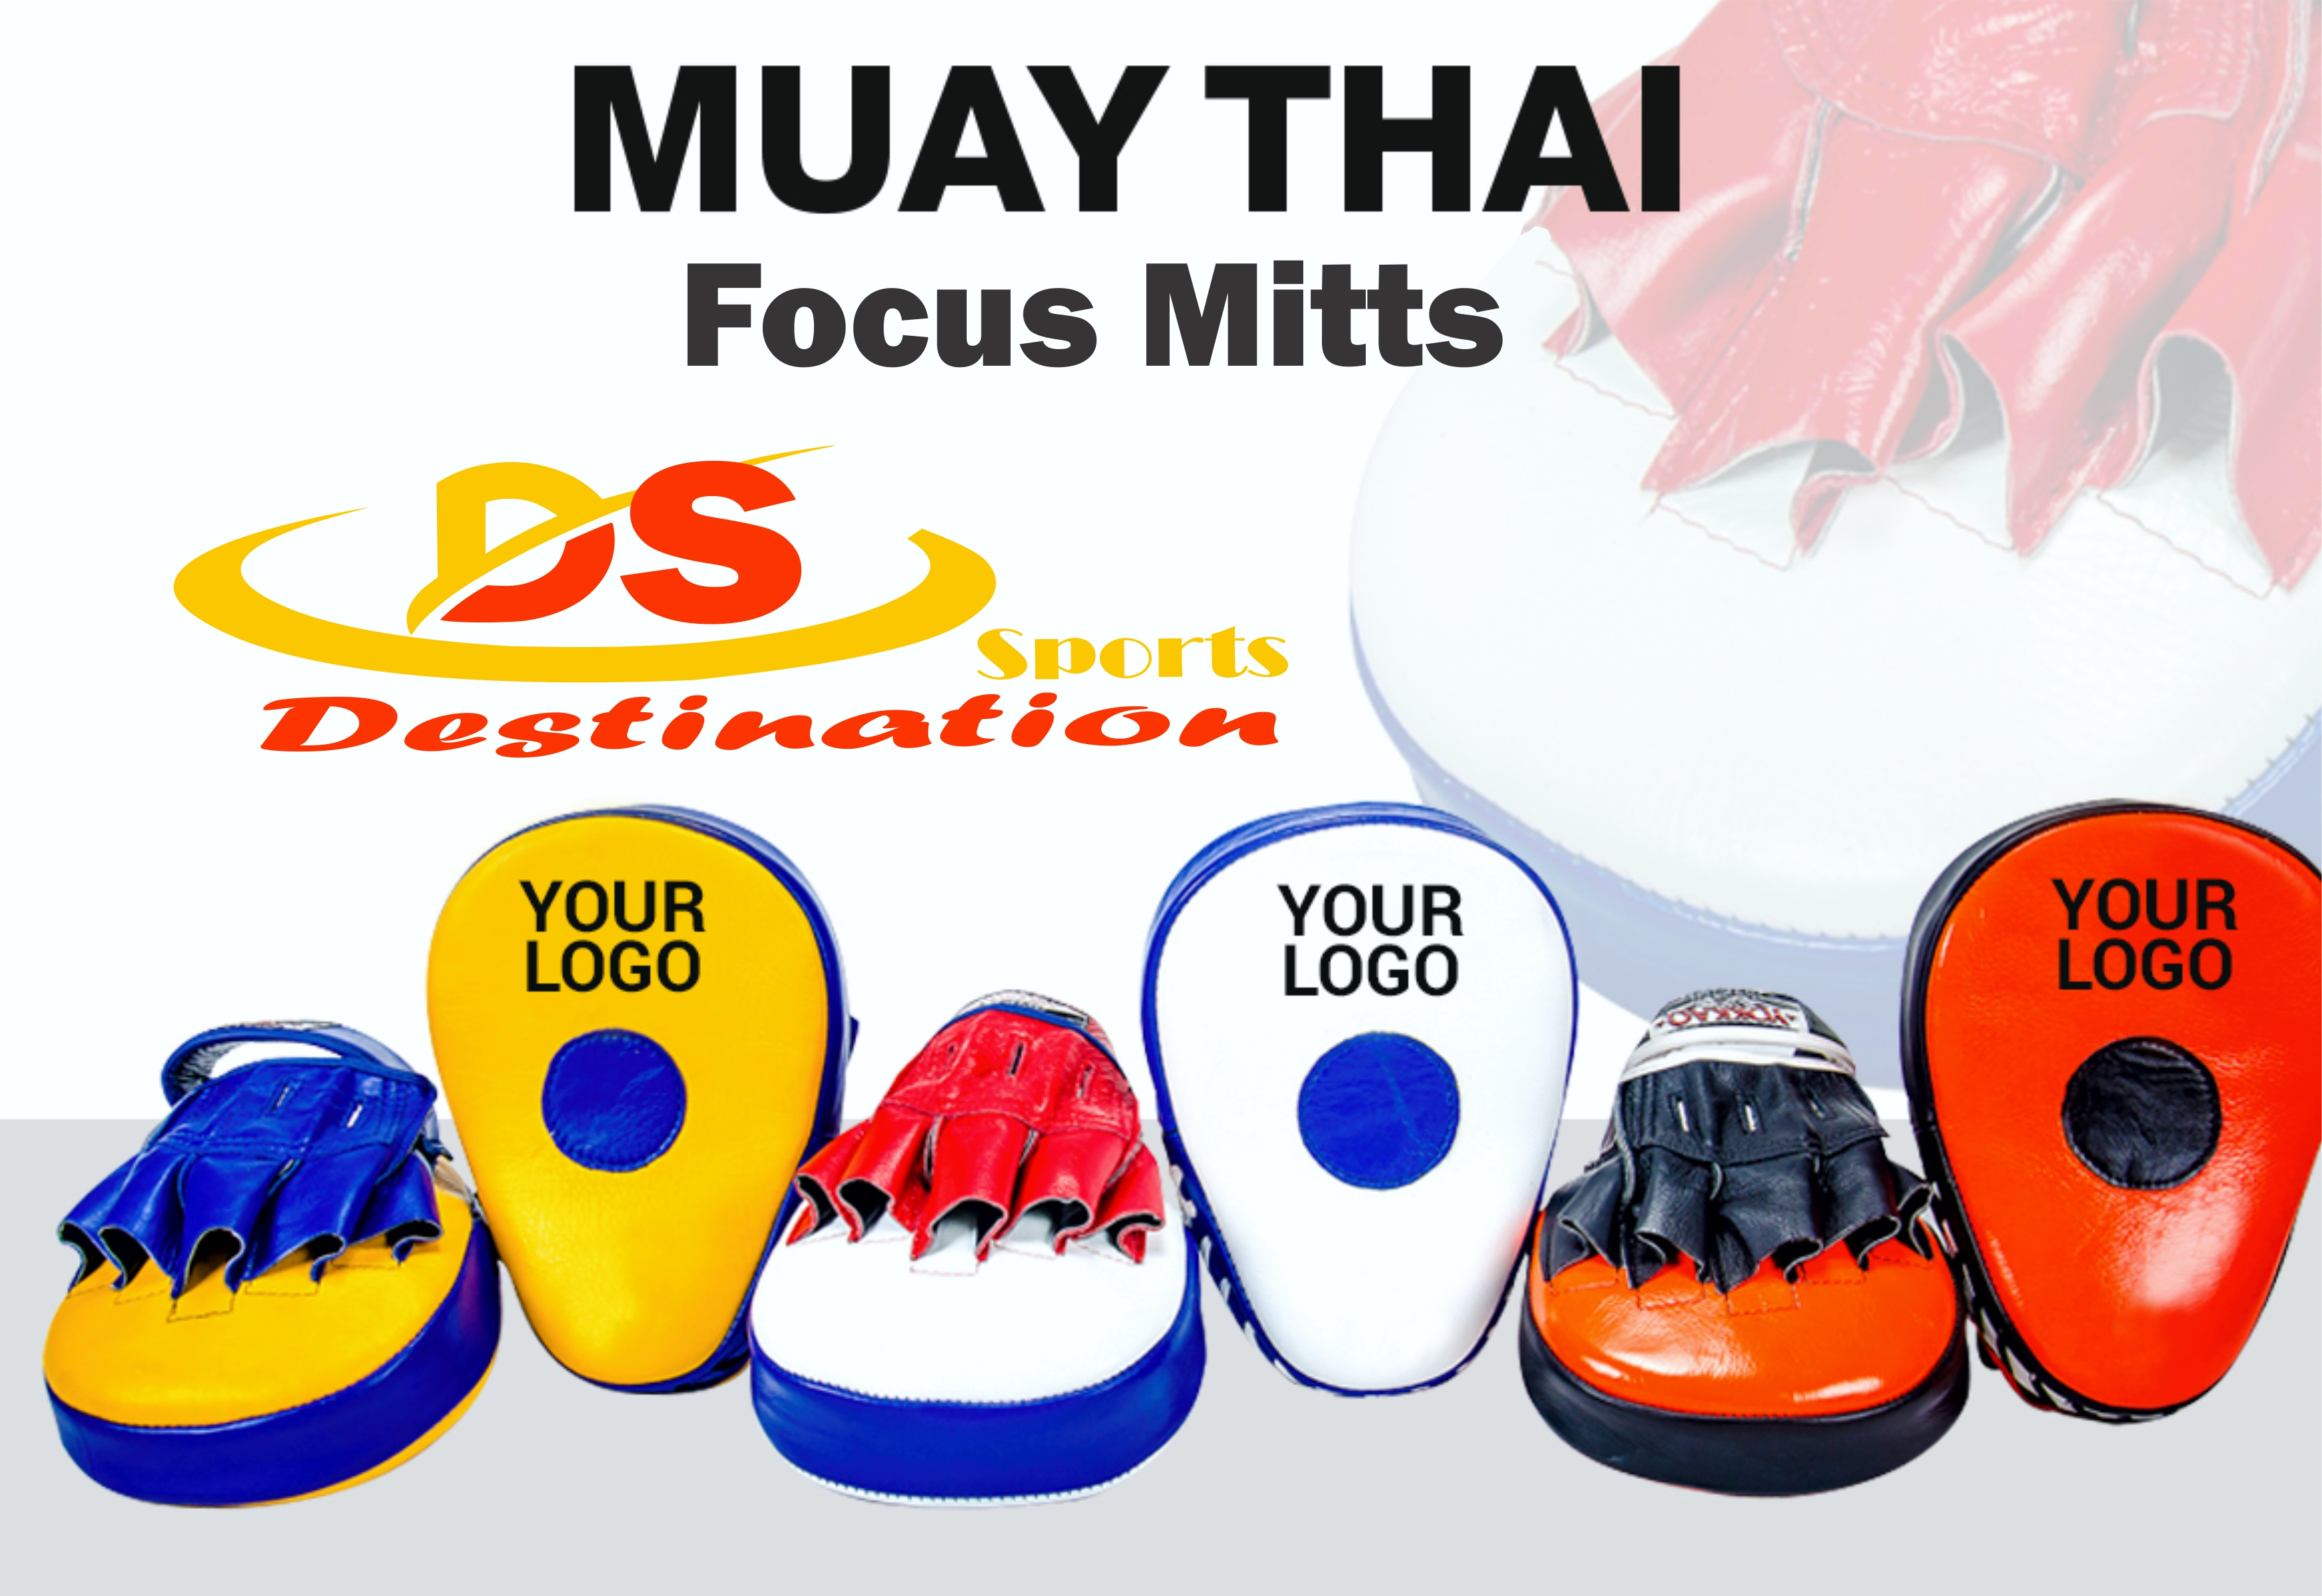 Muay Thai Focus Mitts